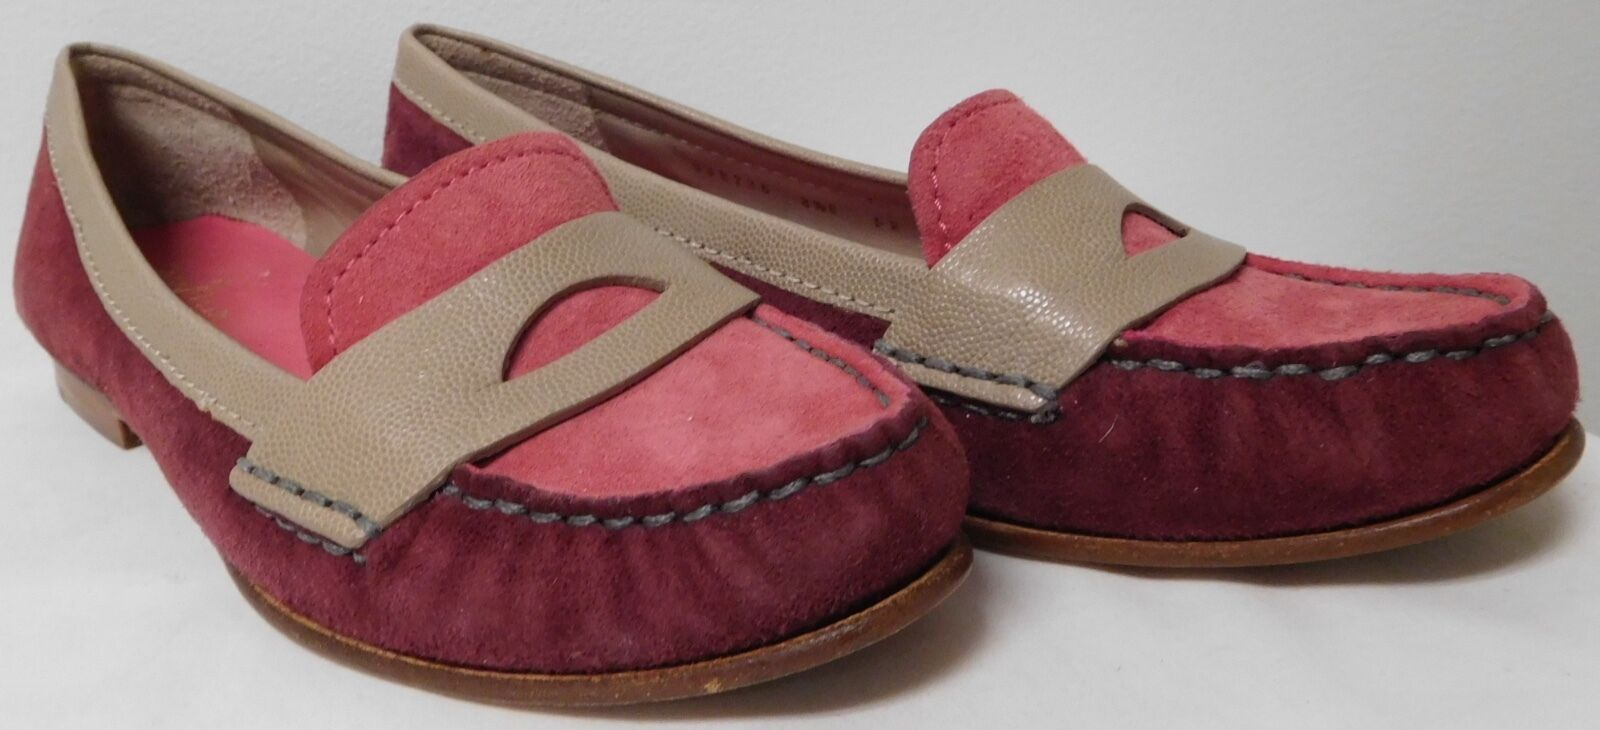 COLE HAAN SWOSH AIR PURPLE AND PINK SUEDE MOCCASINS LOAFERS Donna SIZE 8.5 EUC